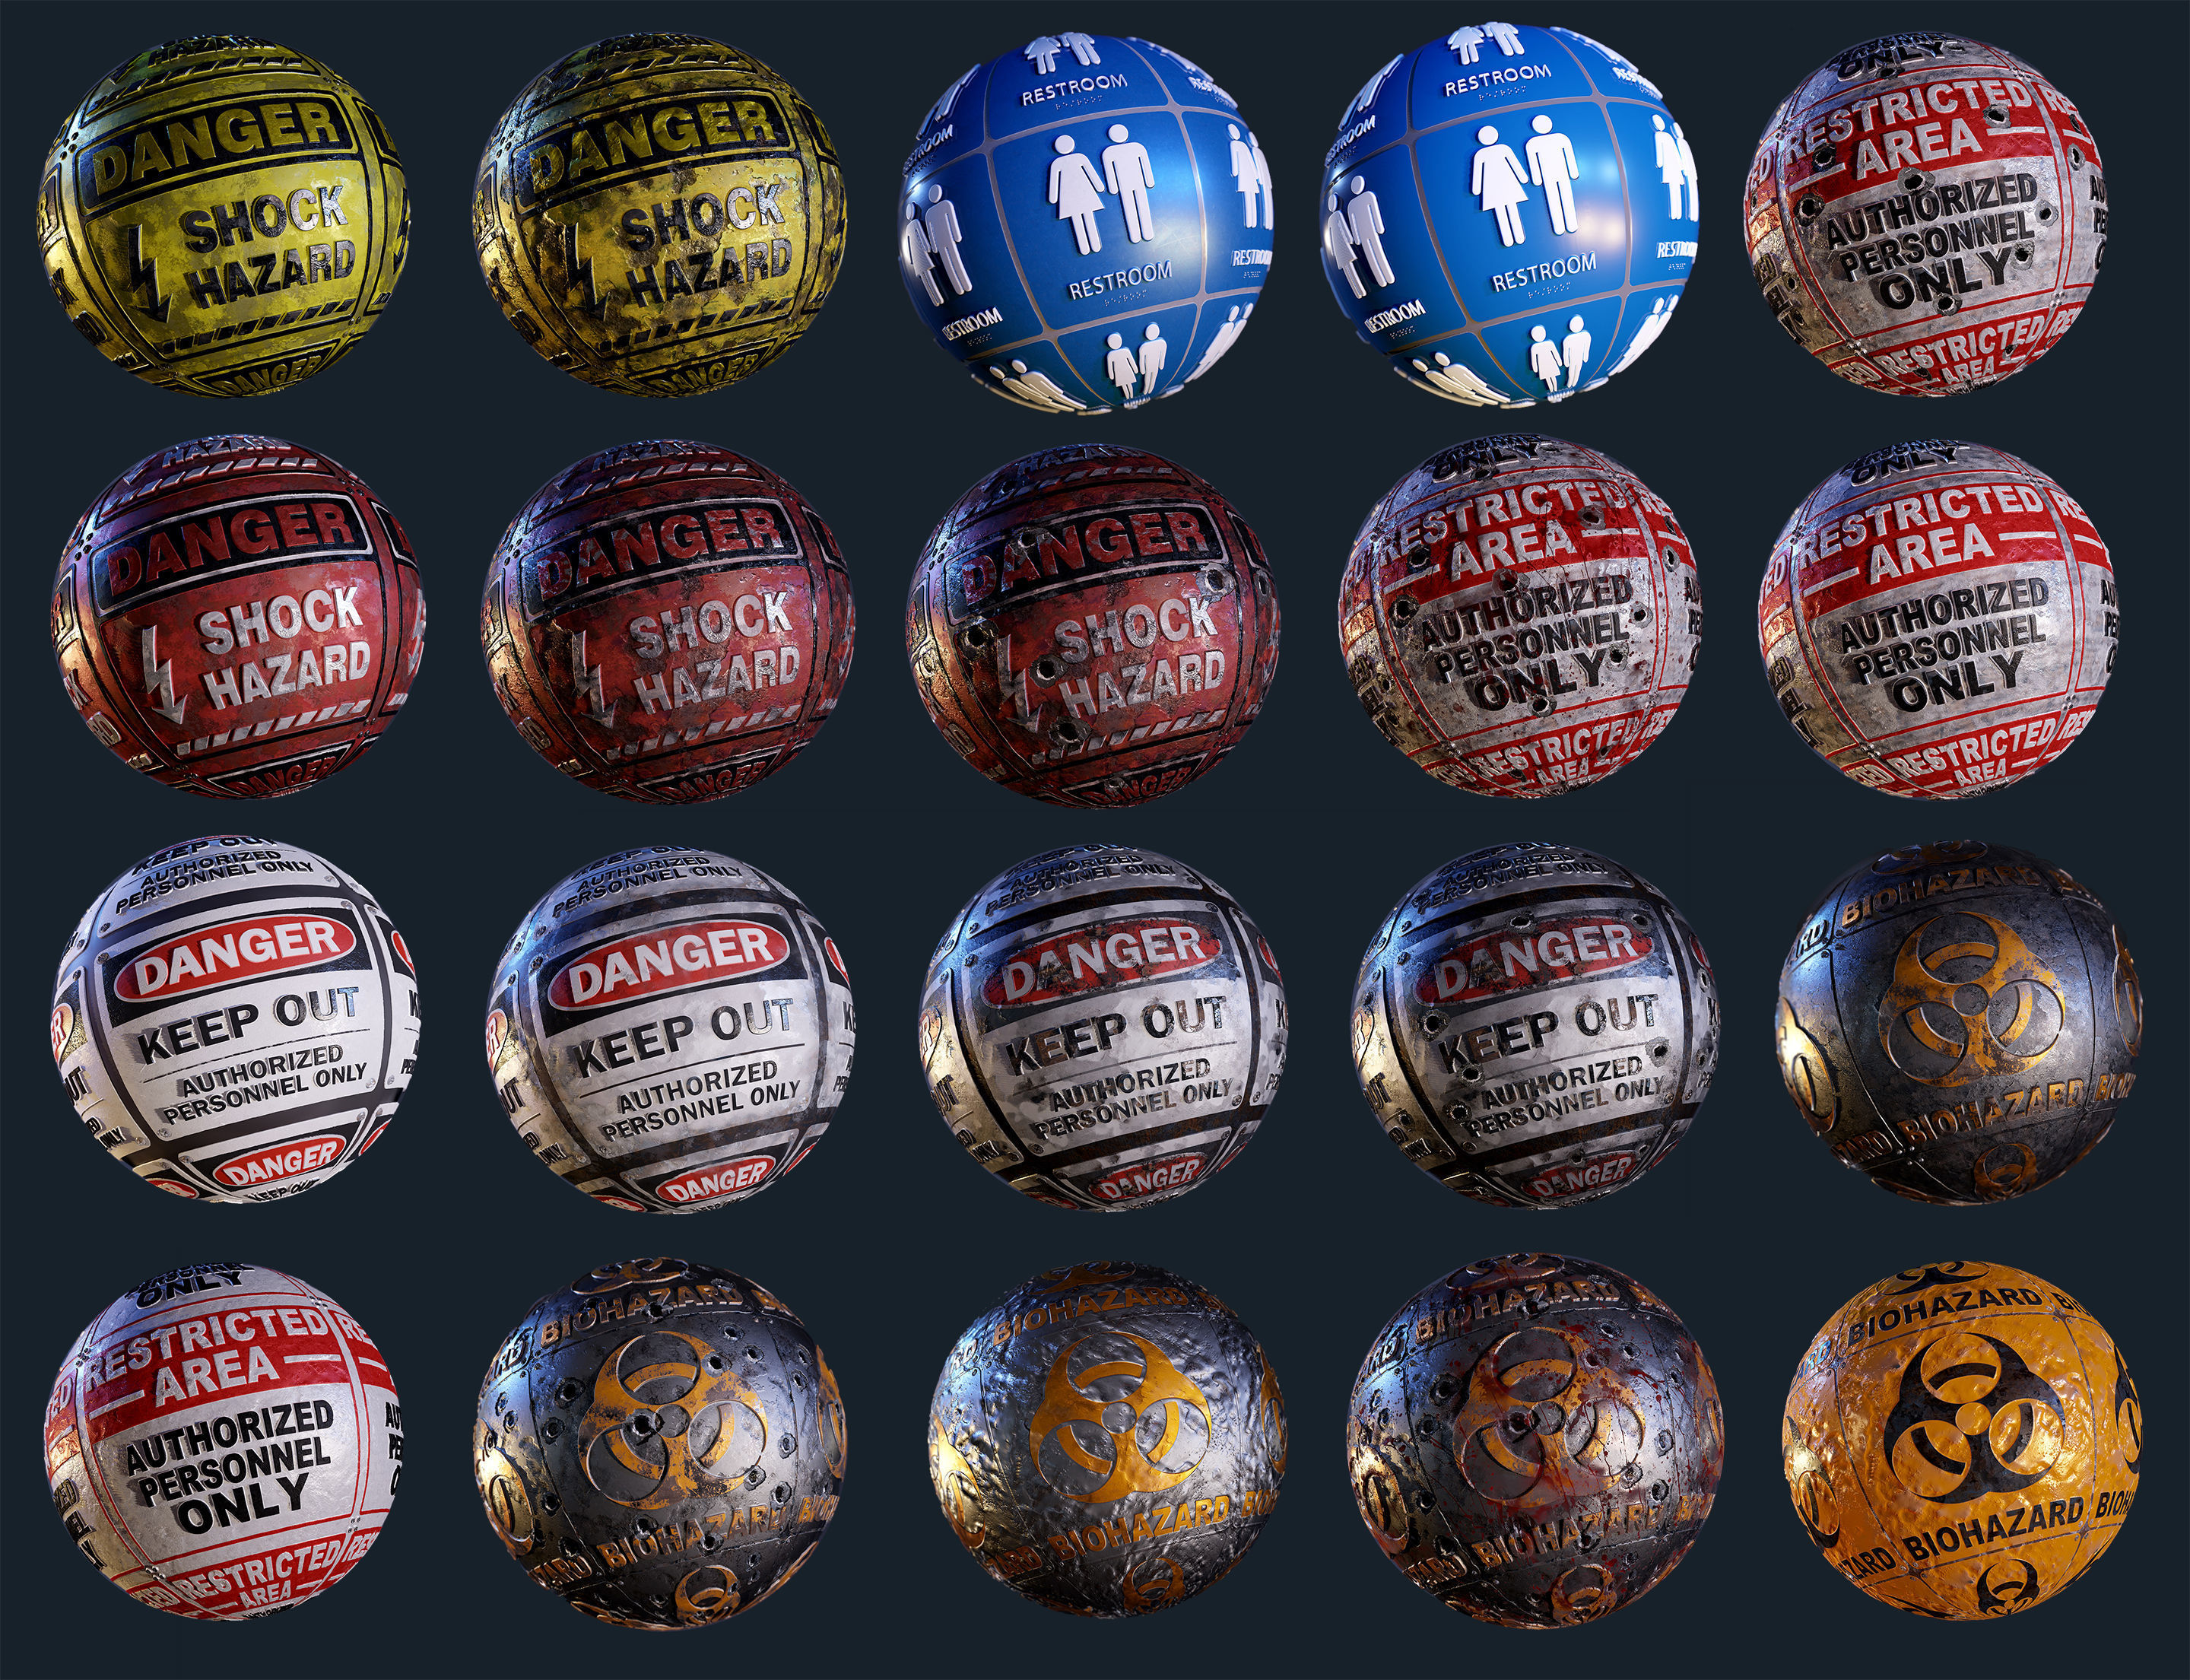 20 Signage Seamless PBR Textures Pack